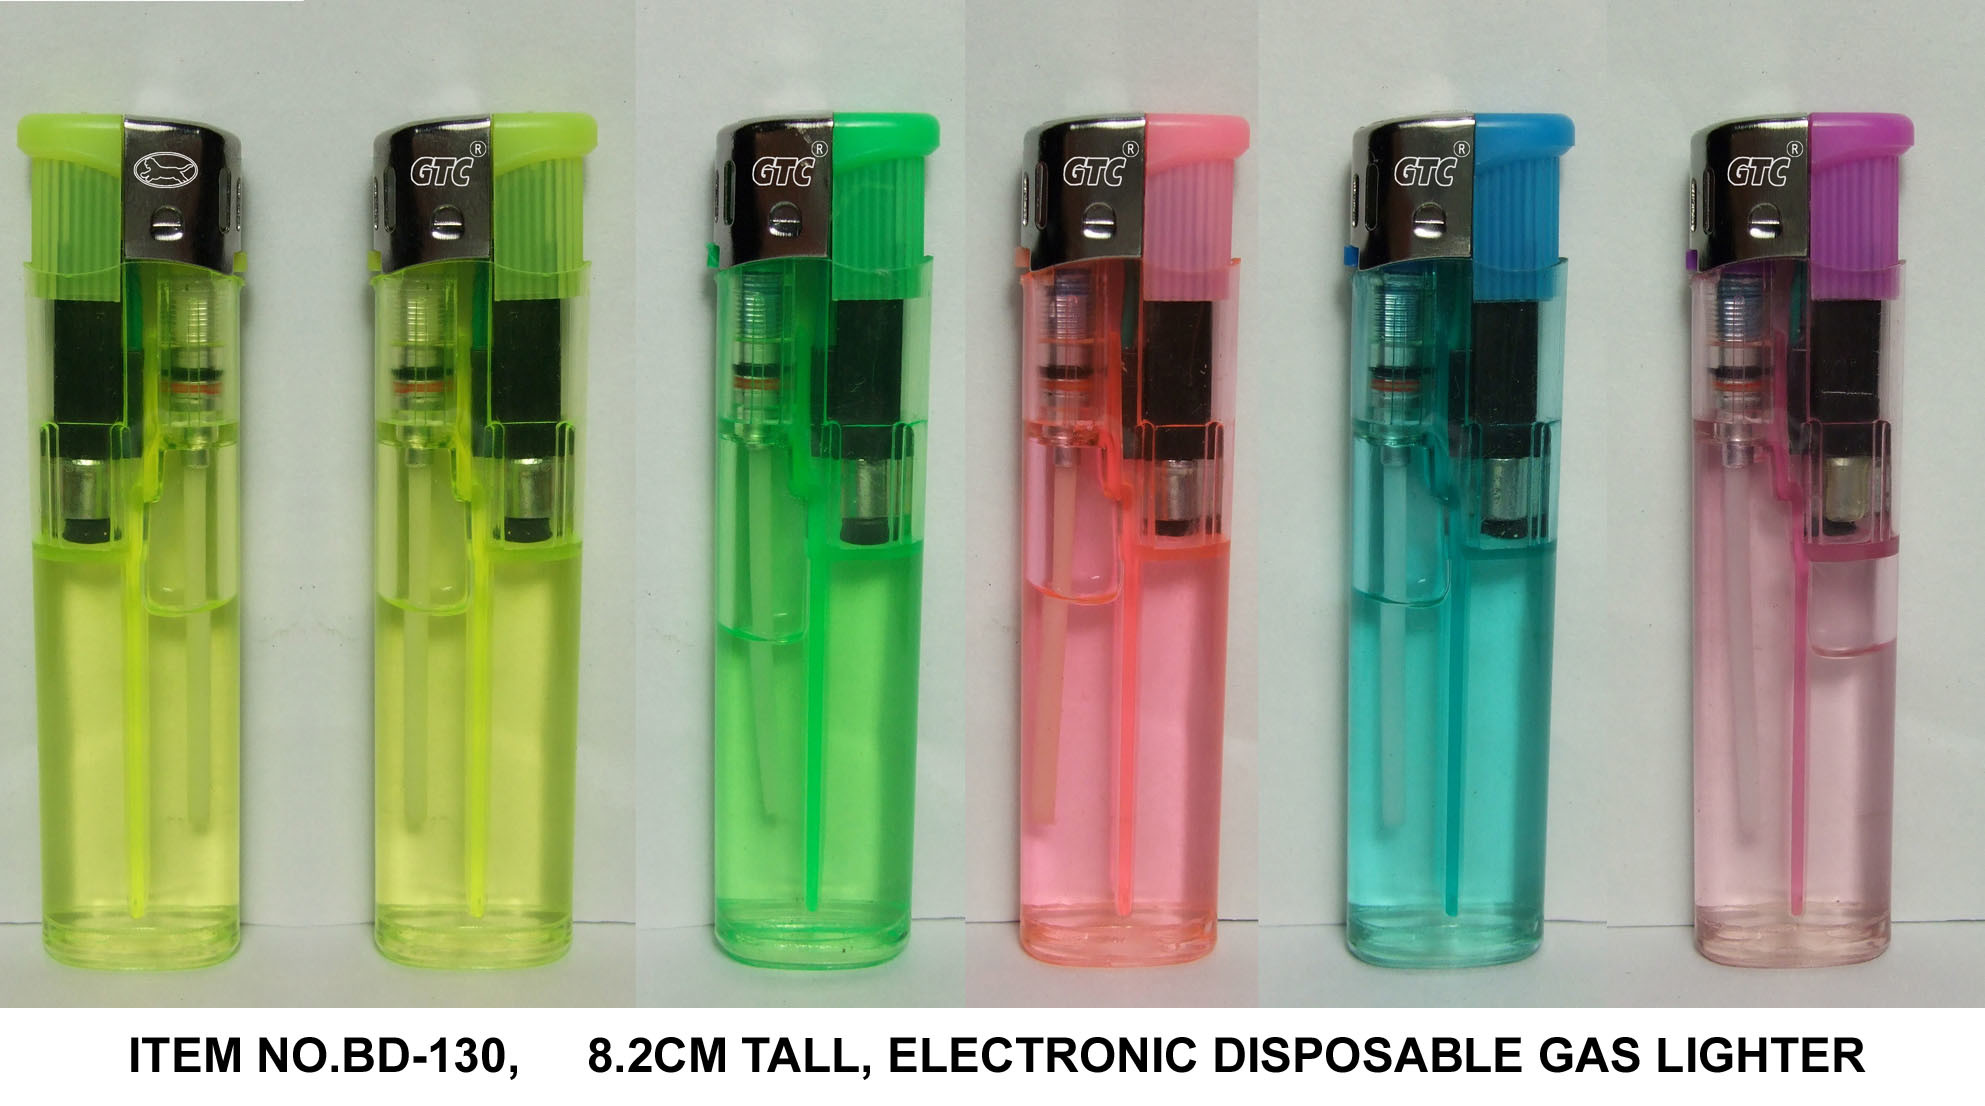 Electronic Disposable Gas Lighter (BD-130)